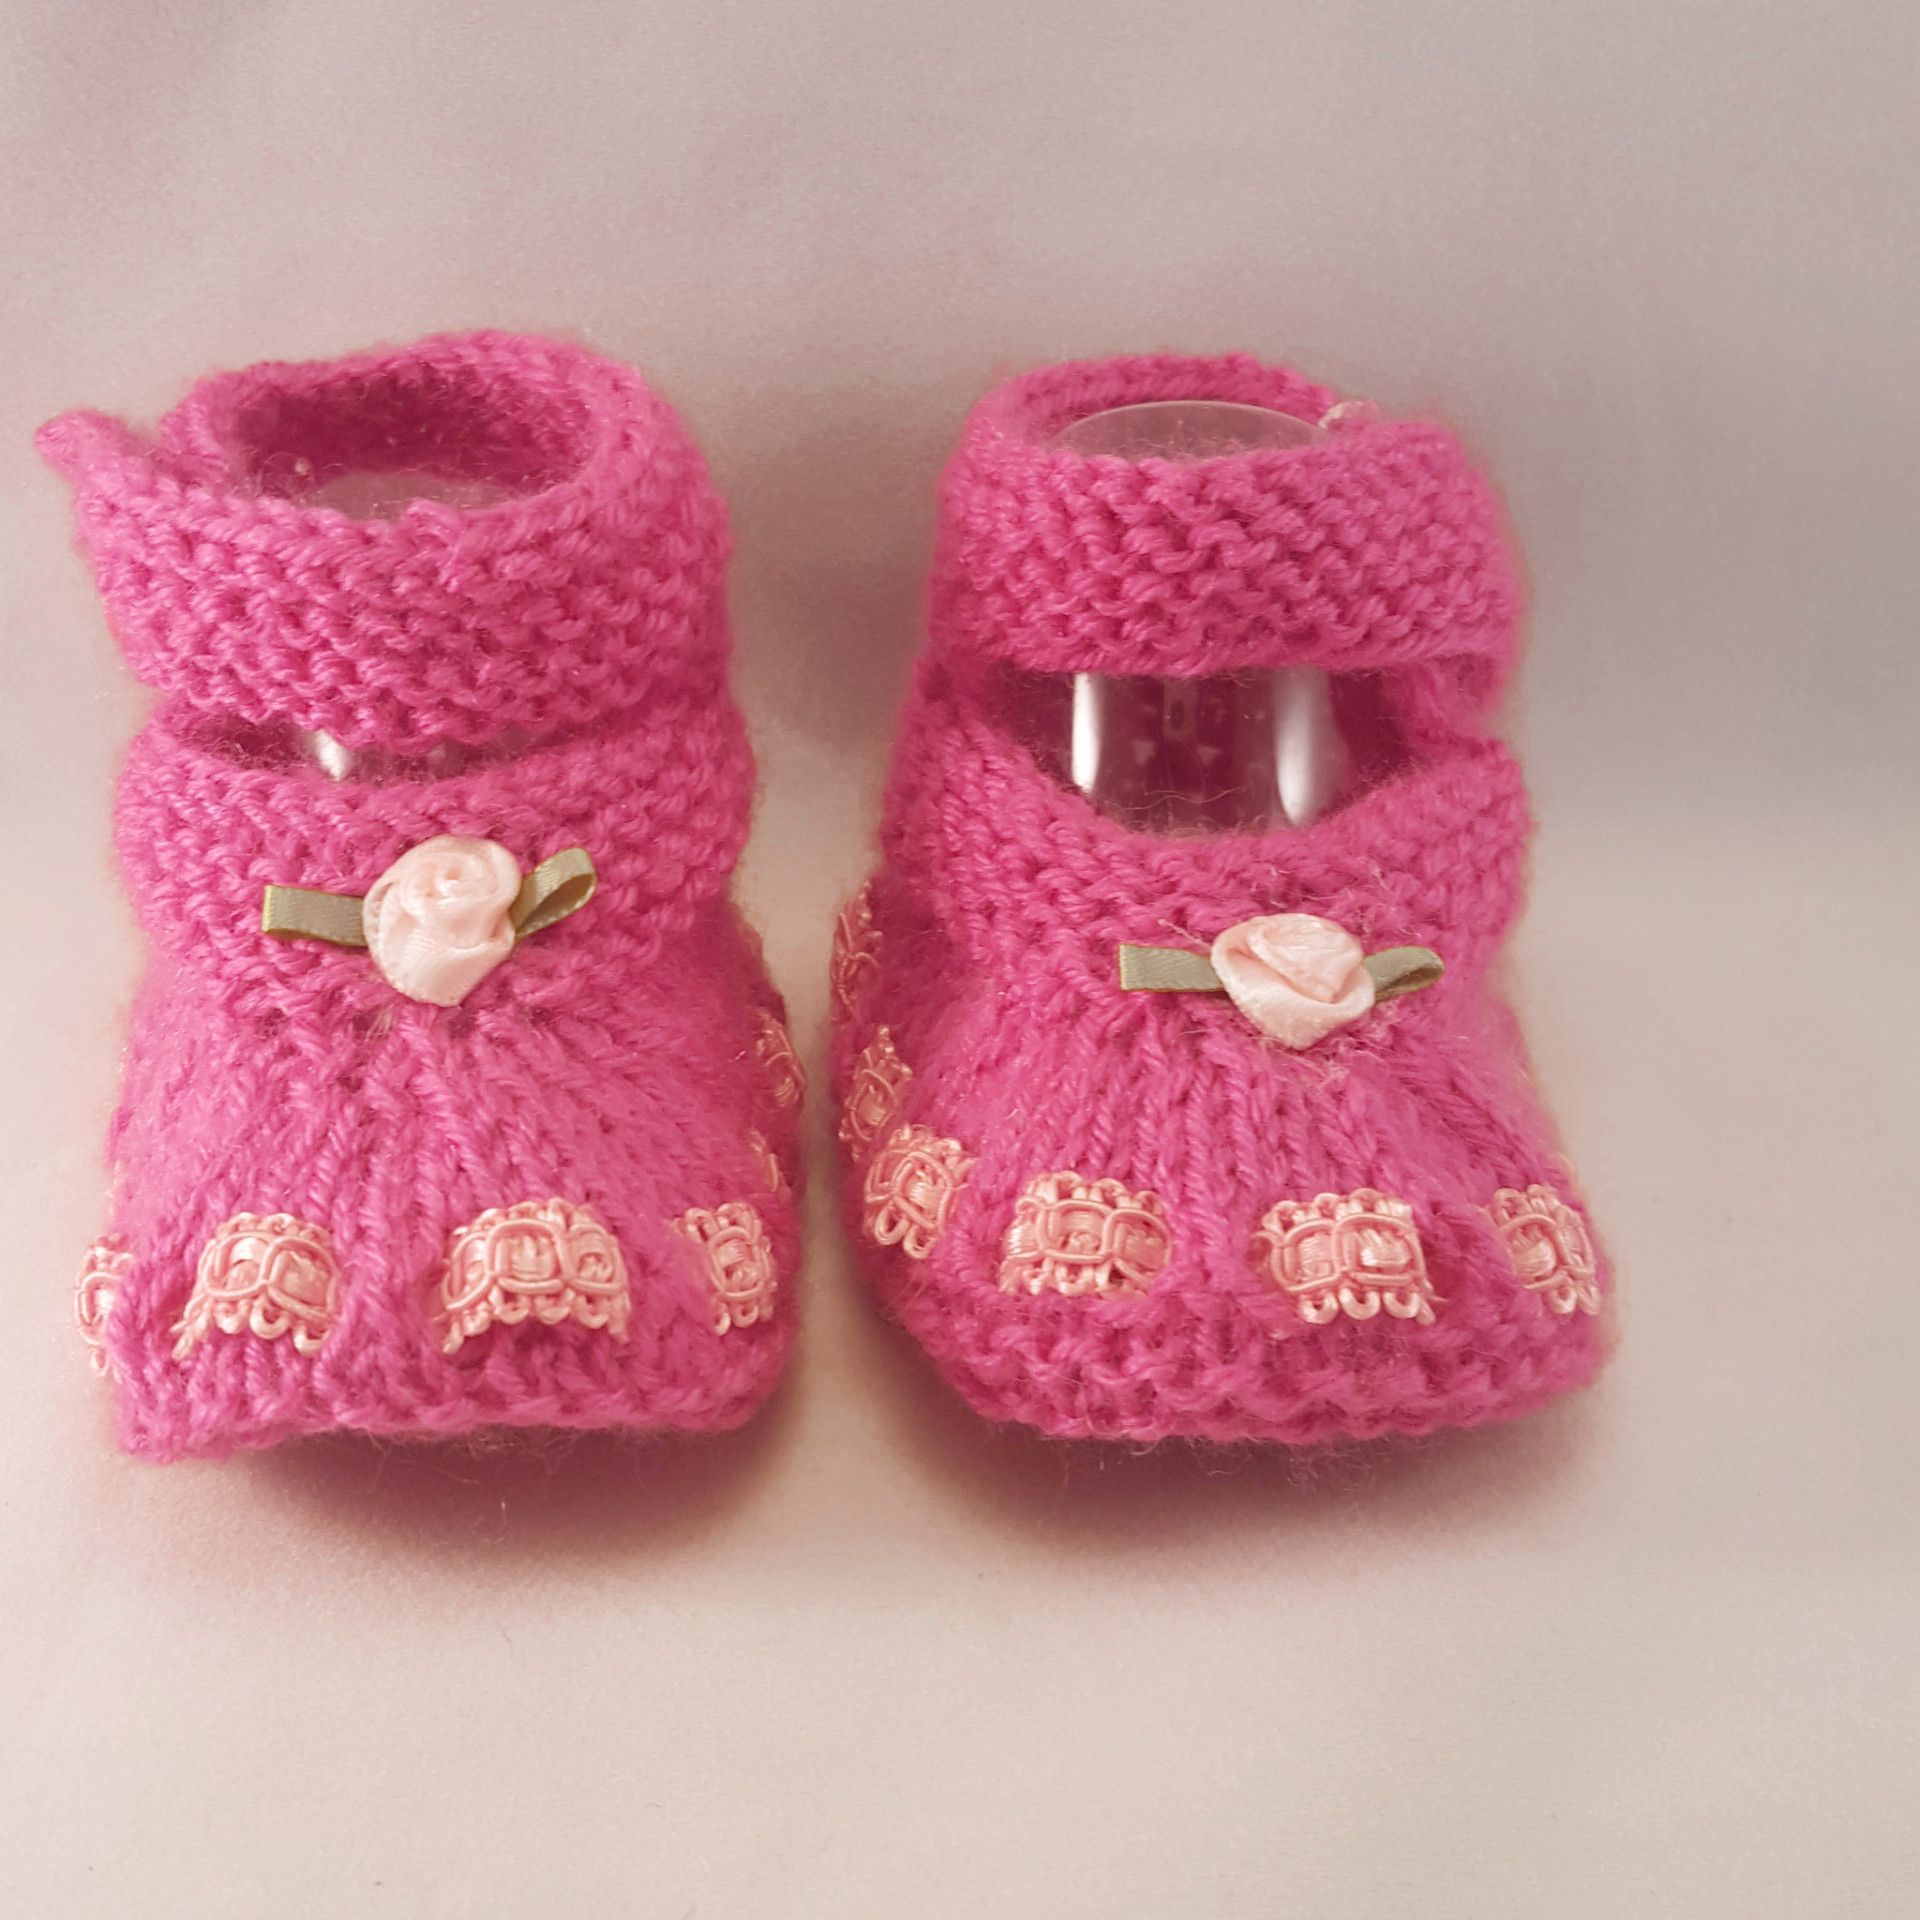 Our Knitted baby booties keep your baby's little feet warm